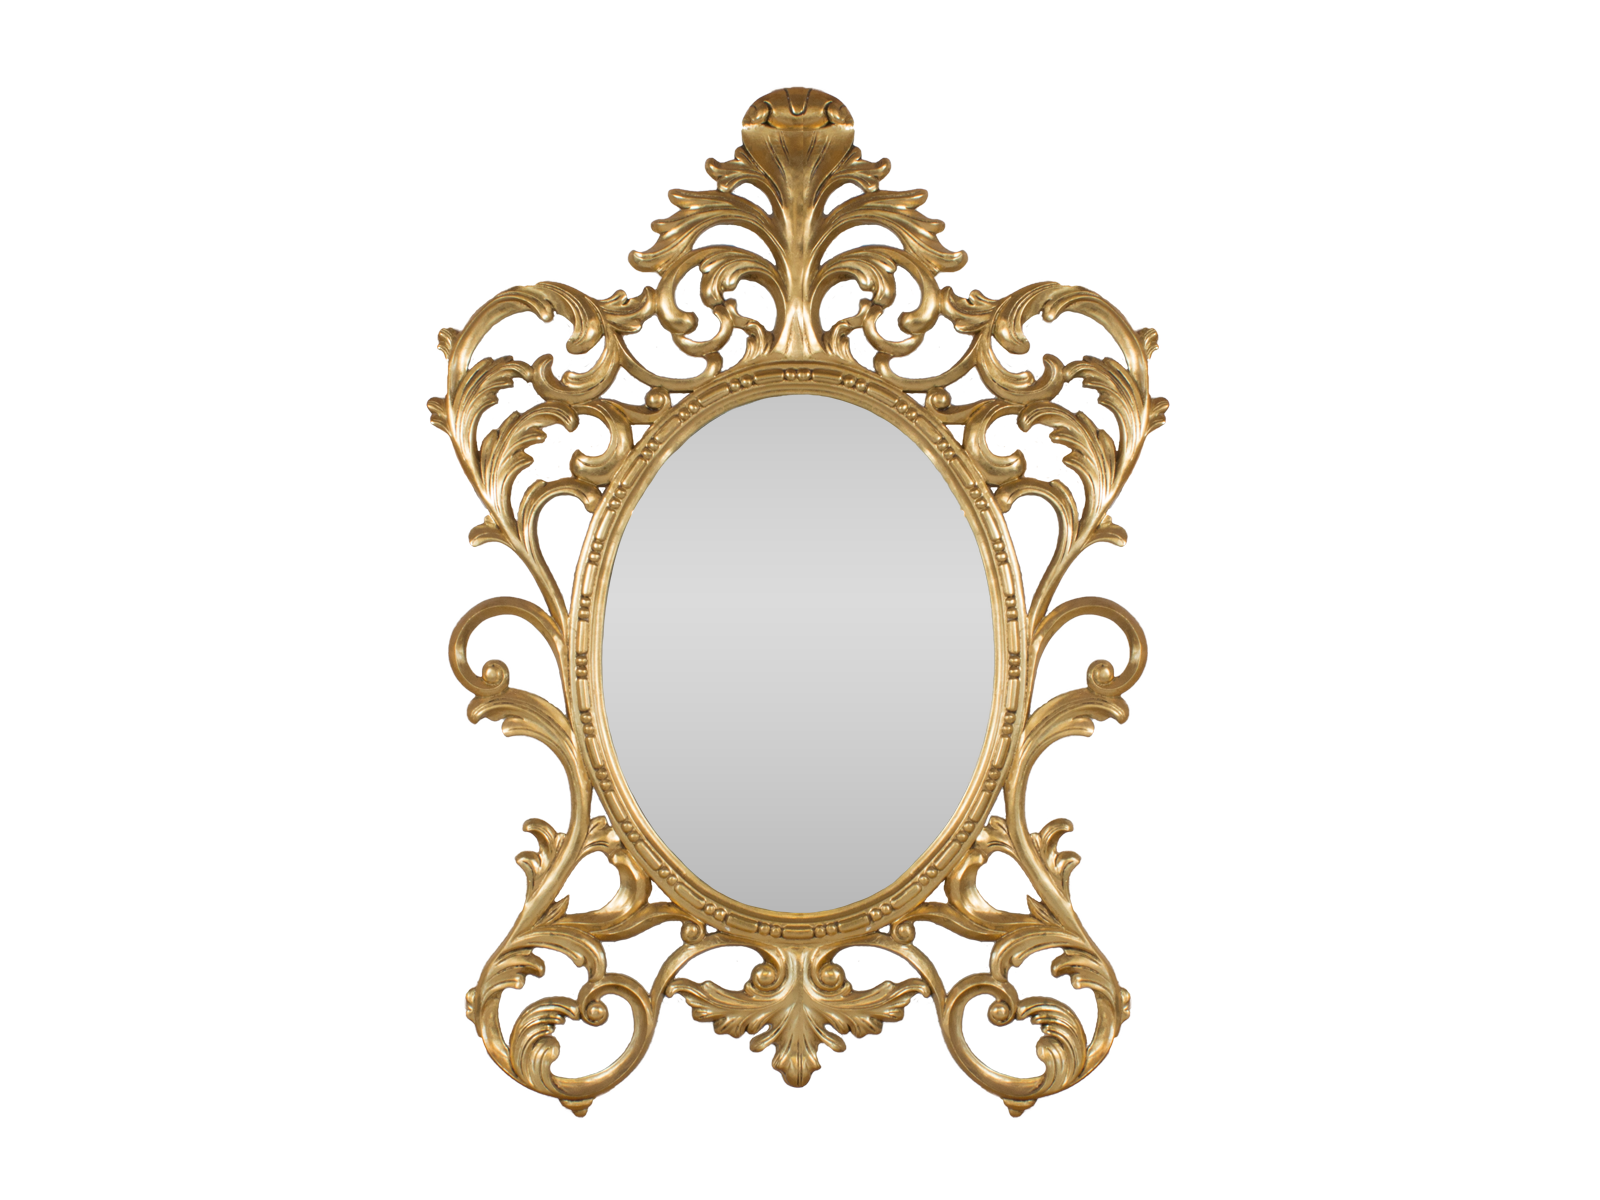 gold oval baroque mirror hidden mill